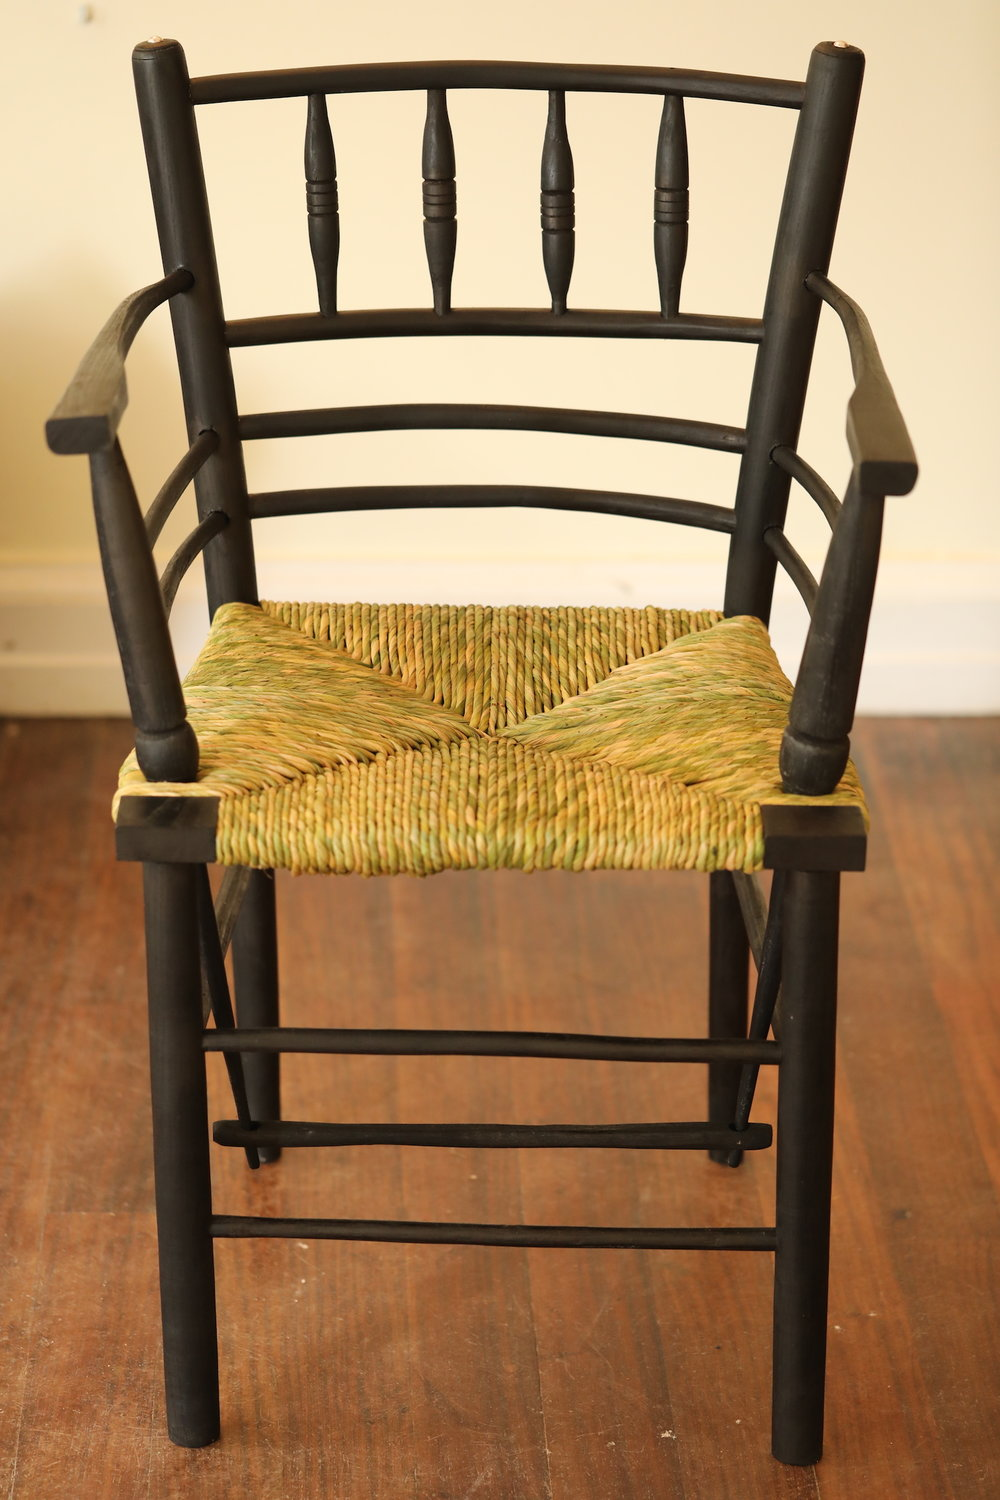 Sussex Chair completed